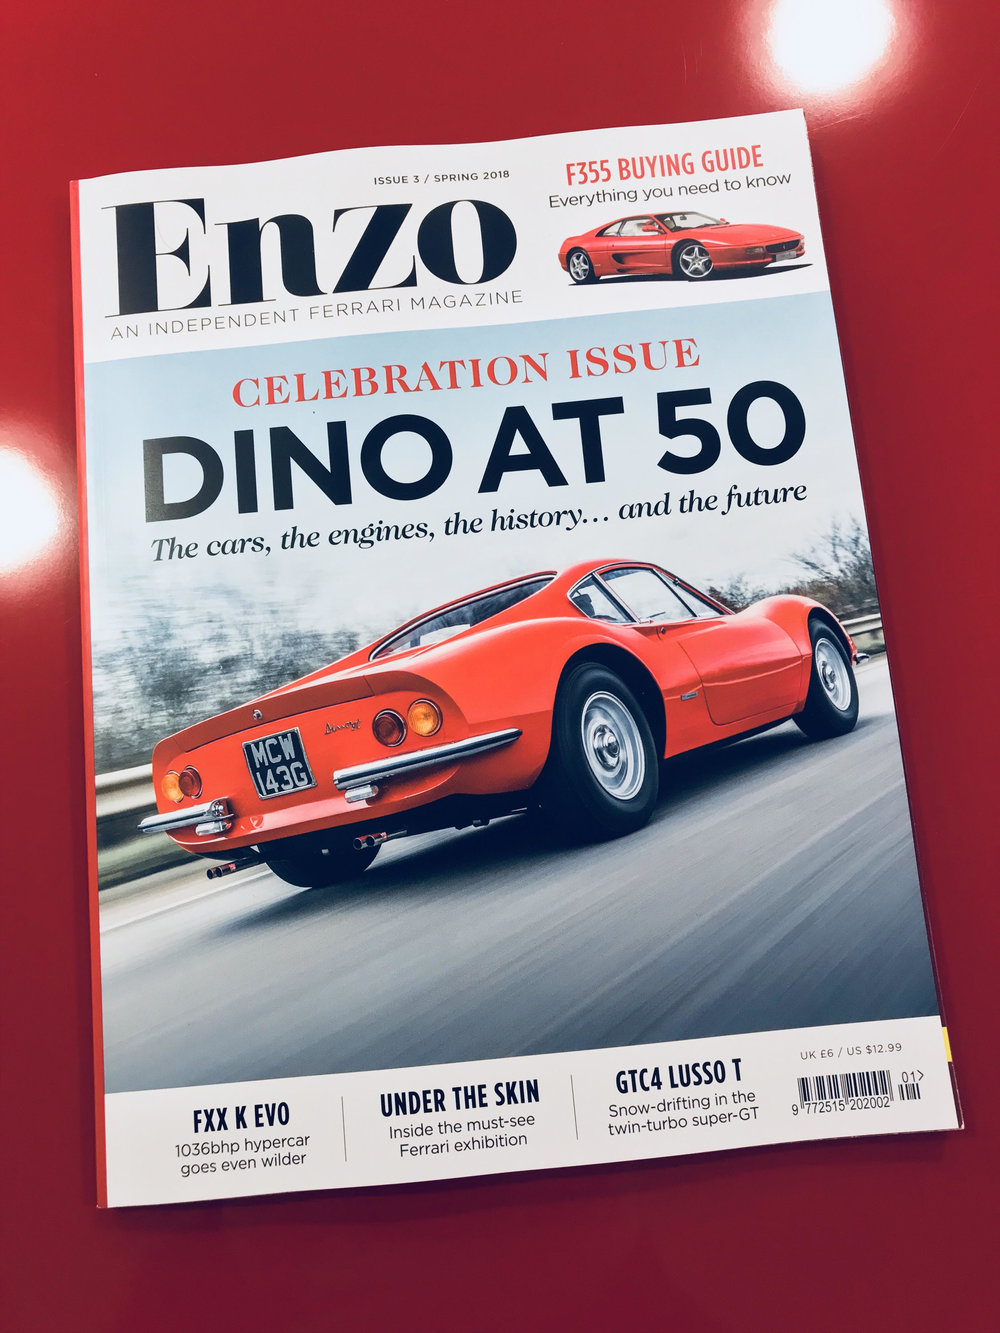 NEW ENZO MAGAZINE! - eNZO MAGAZINE ARTICLEGO CHECKOUT THE NEW SPRING EDITION OF ENZO MAGAZINE!iF YOU'D LIKE TO KNOW MORE ABOUT OUR HISTORY THEN THIS WILL PROVIDE YOU WITH A GREAT INSIGHT TO HOW WE OPERATE.YOU CAN SUBSCRIBE BY VISITING THEIR WEBSITEWWW.ENZO-MAGAZINE.CO.UK